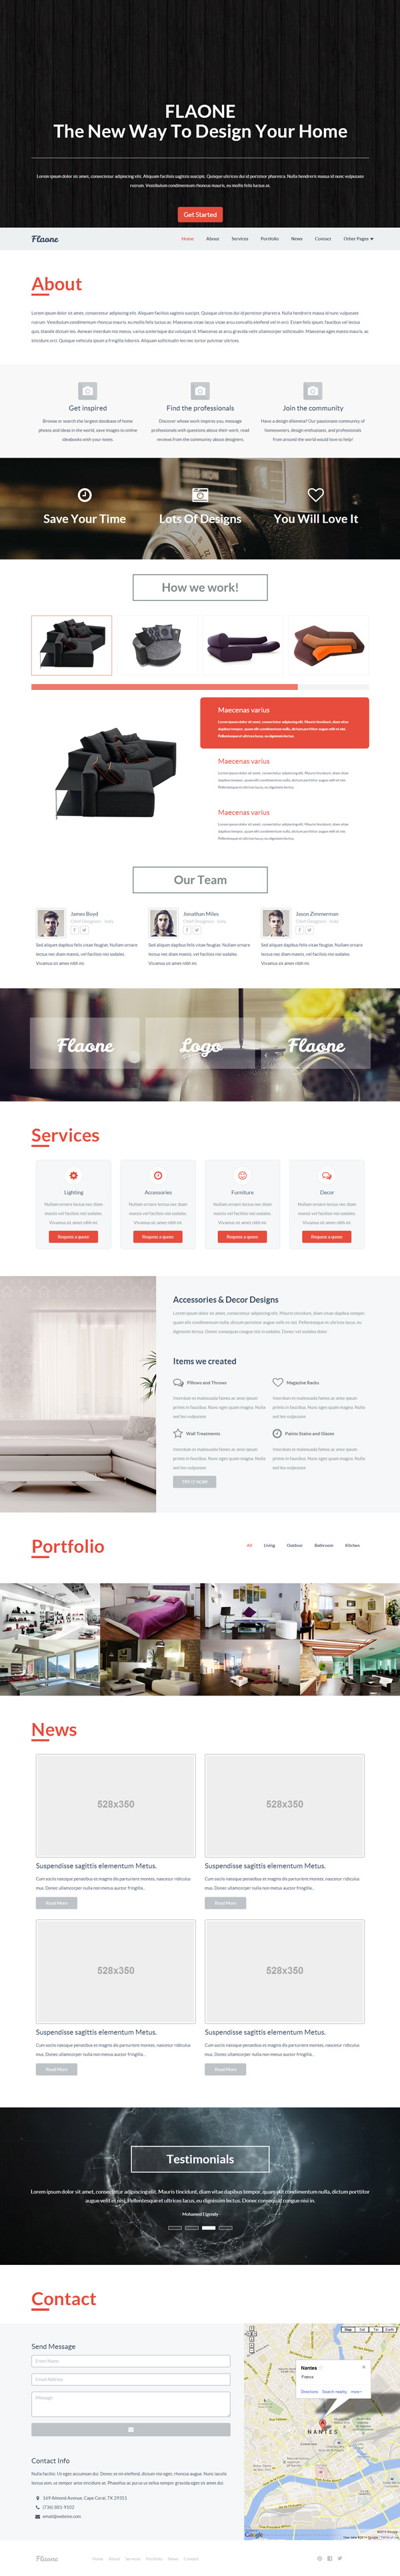 Flaone - Flat UI Pro One Page